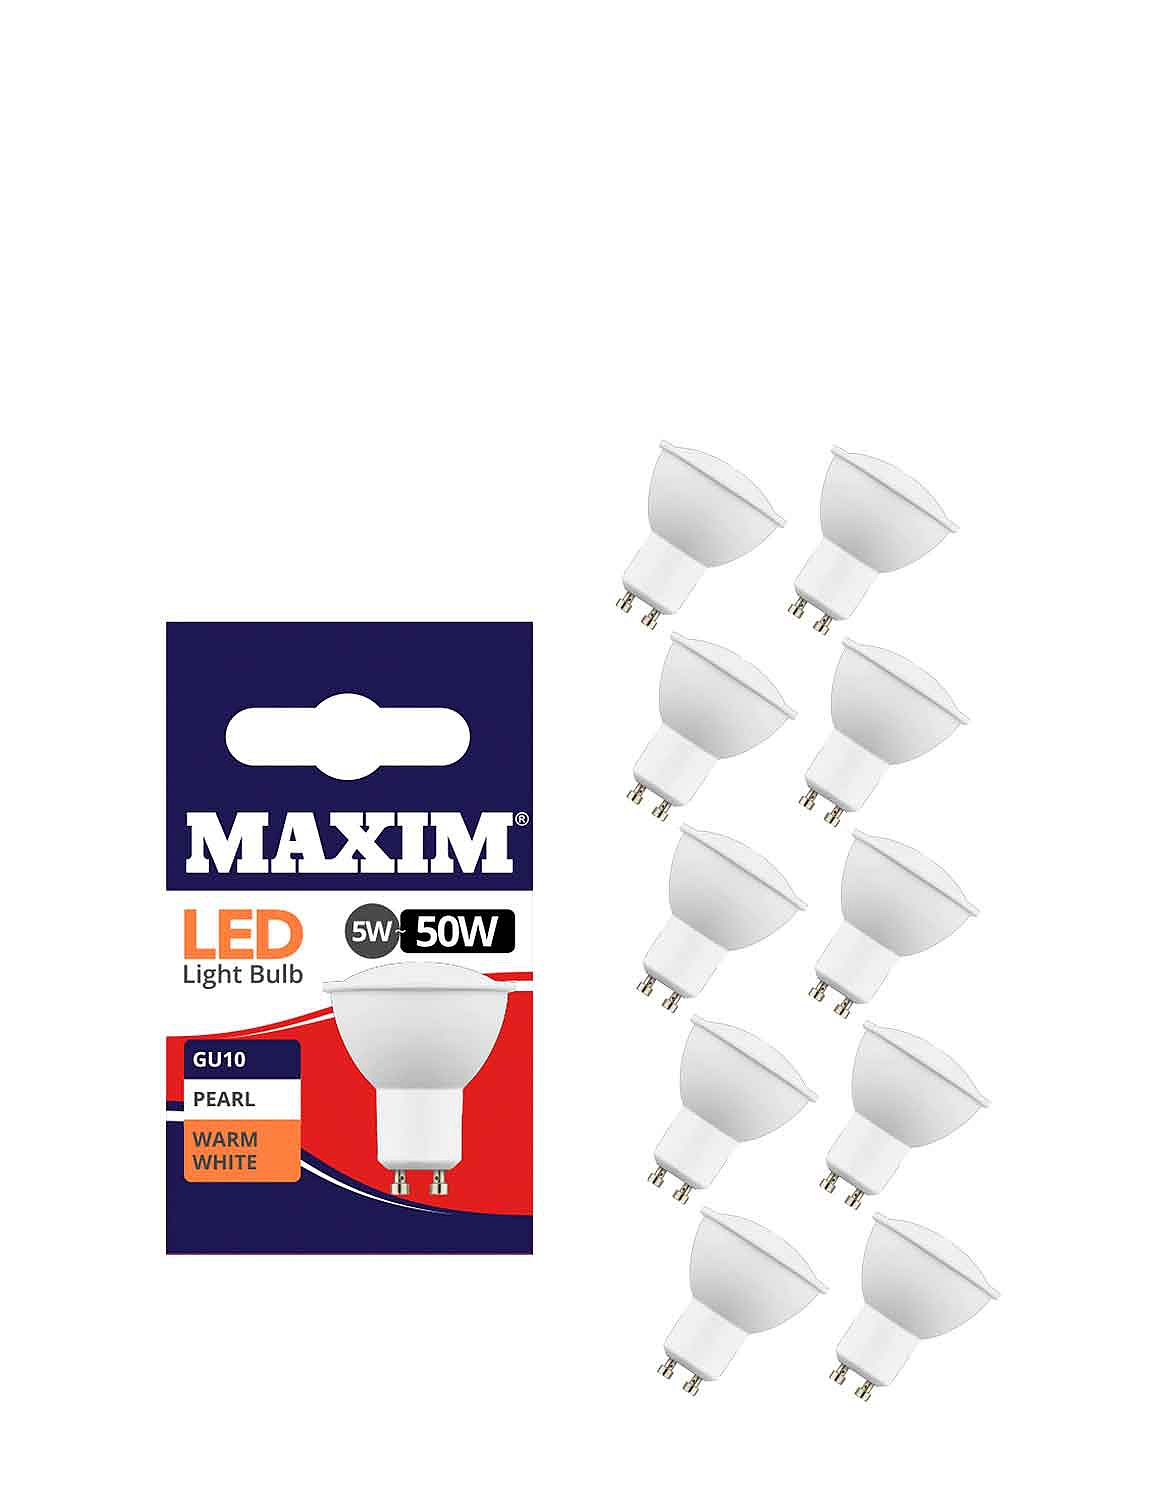 5w Lifetime LED Spotlight Bulb Fit Set of 5  - MULTI